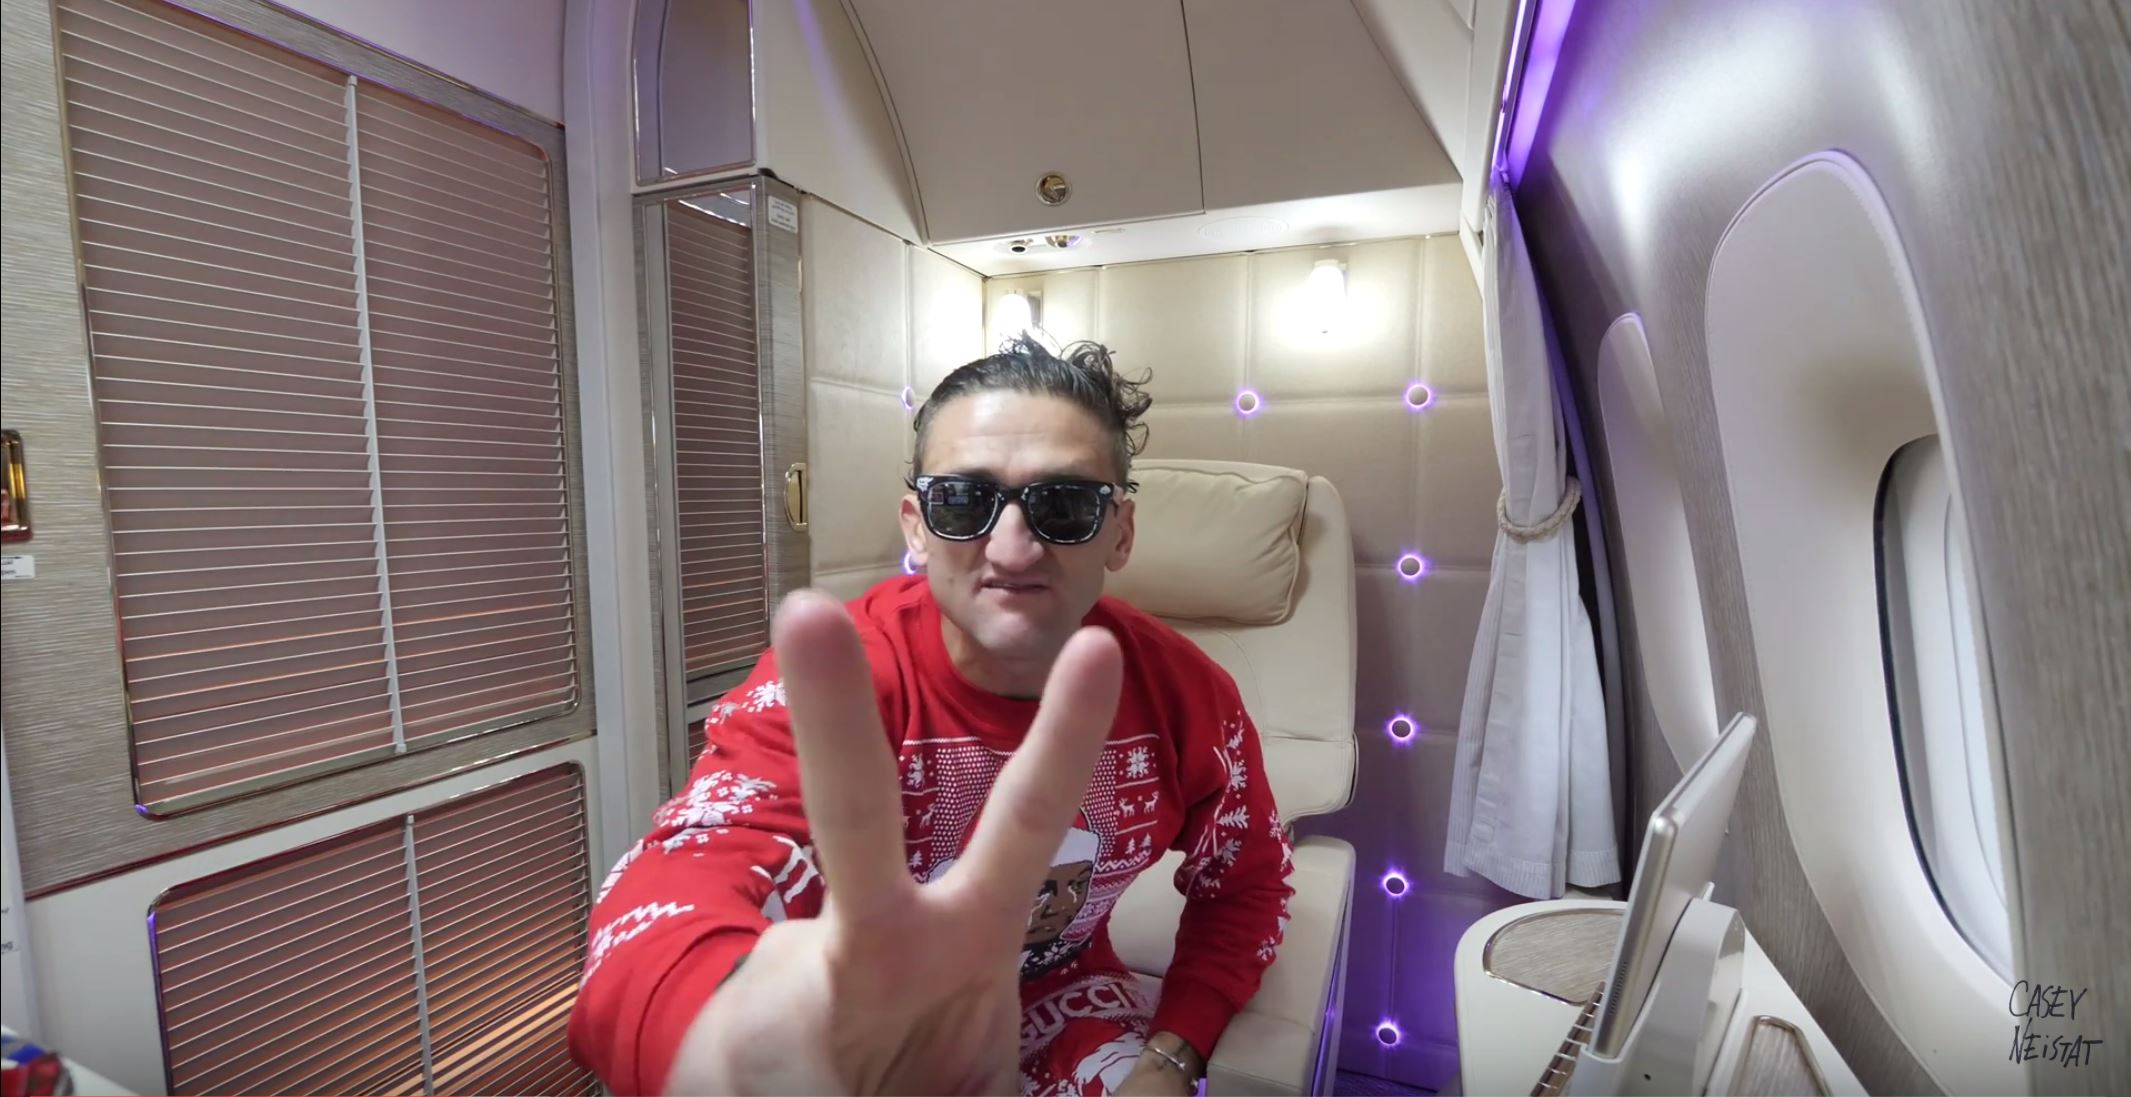 ALL TIME GREATEST AIRPLANE SEAT -Luxury Emirates First Class Suite (With Casey Neistat)